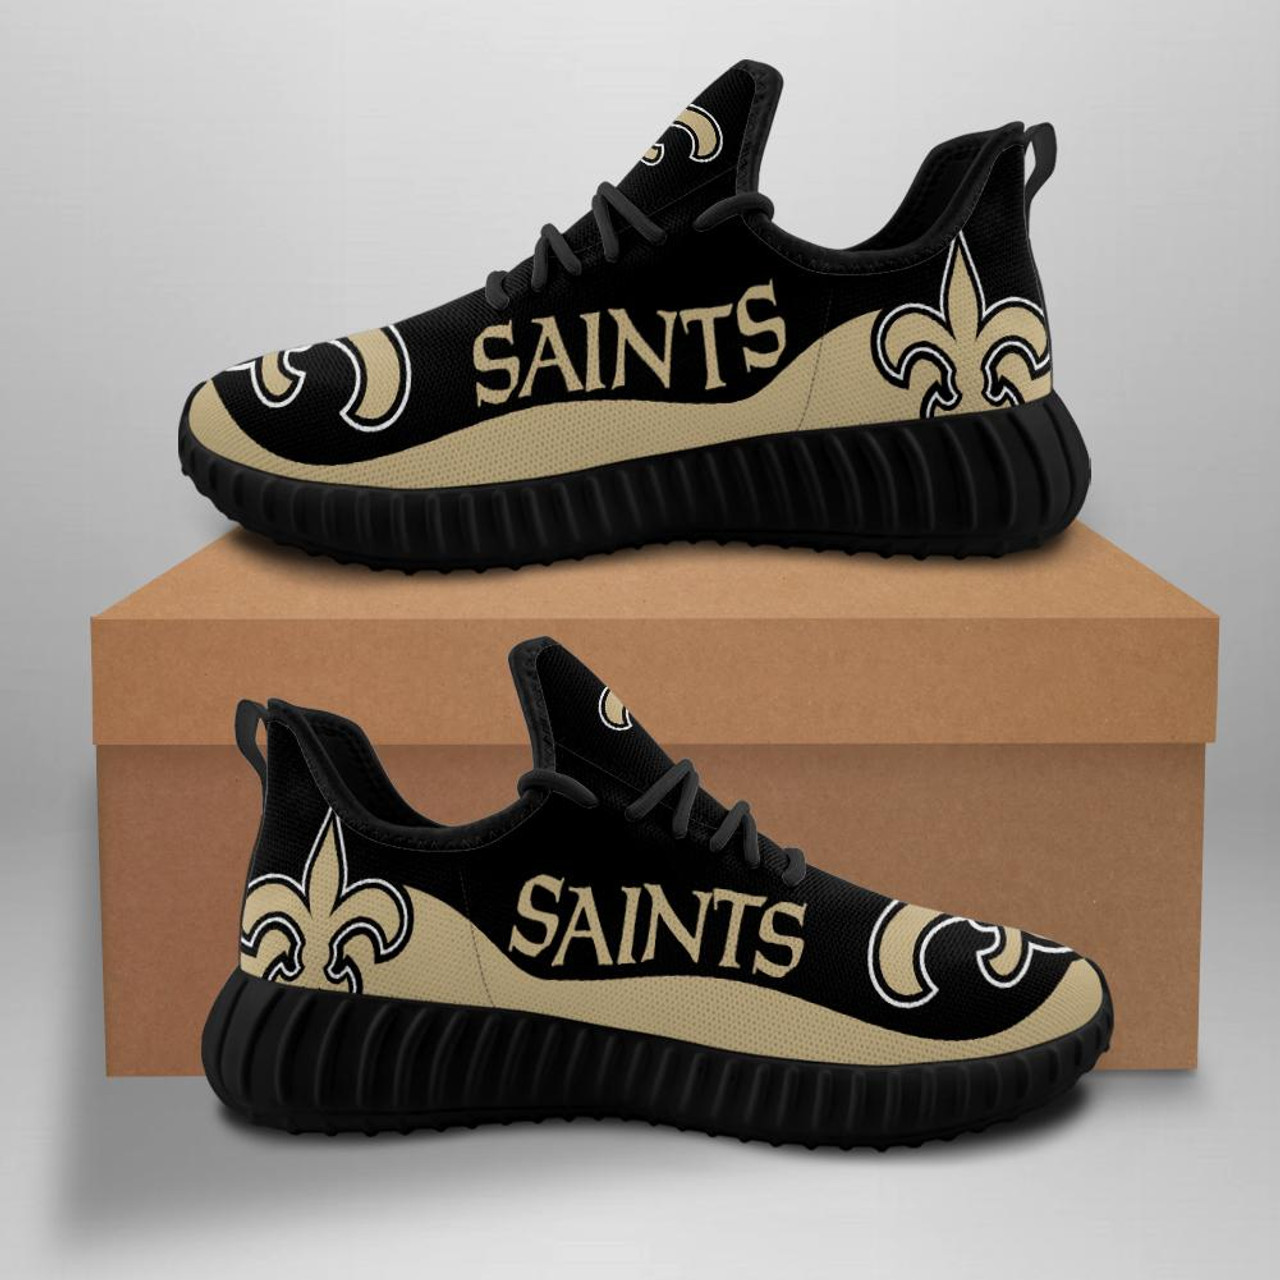 **(OFFICIAL-NEW-ORLEANS-SAINTS-TEAM-BLACK-FASHION-SPORT-SHOES/CUSTOM-DETAILED-3D-GRAPHIC-PRINTED-DOUBLE-SIDED-DESIGN/OFFICIAL-CUSTOM-SAINTS-LOGOS & CLASSIC-OFFICIAL-SAINTS-BLACK & BEIGE-TEAM-COLORS/TRENDY-PREMIUM-N.F.L.SAINTS-TEAM-SPORT-SHOES)**